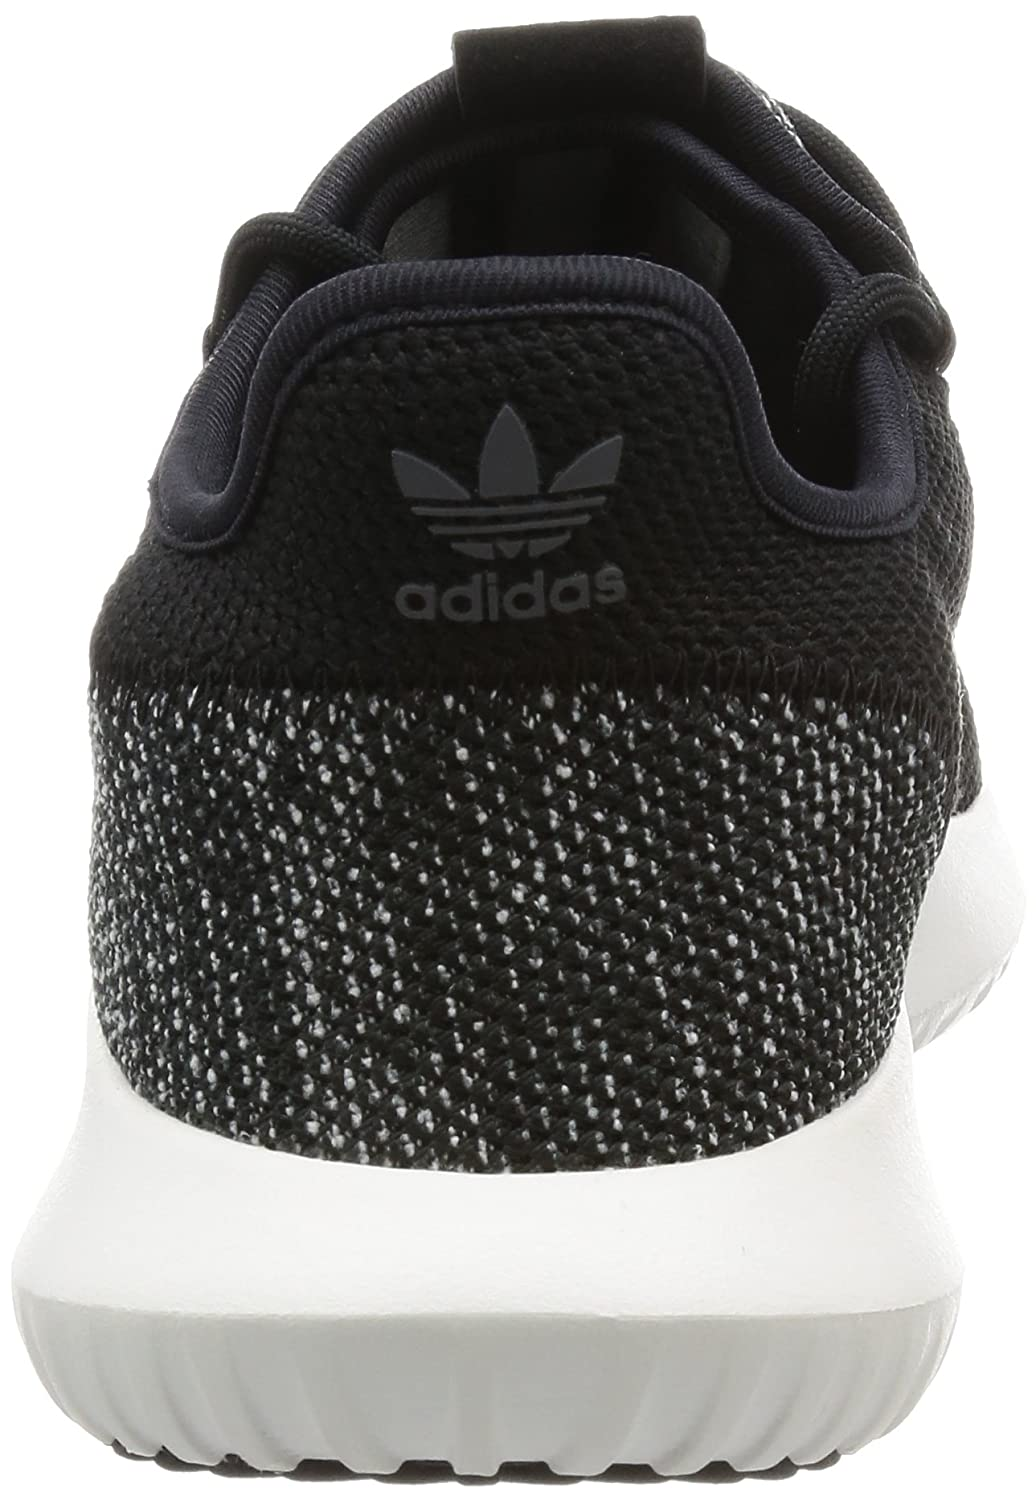 sports shoes 6b31d b3a31 adidas Mens Tubular Shadow Knit Low-Top Sneakers Amazon.co.uk Shoes   Bags